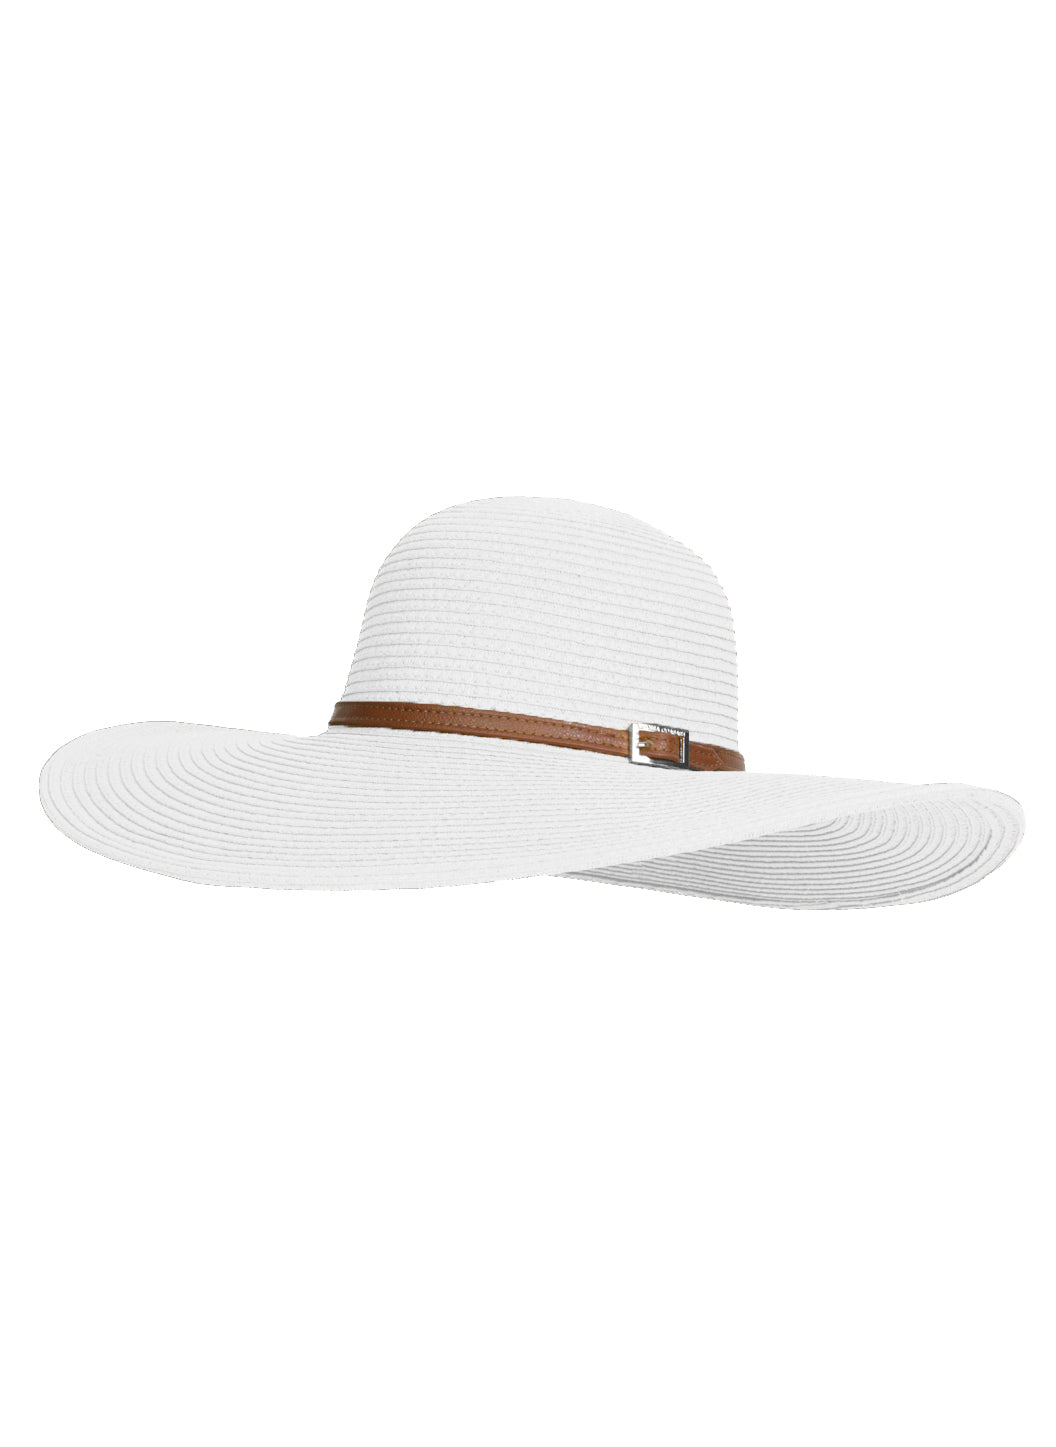 Jemima Wide Brim Beach Hat White